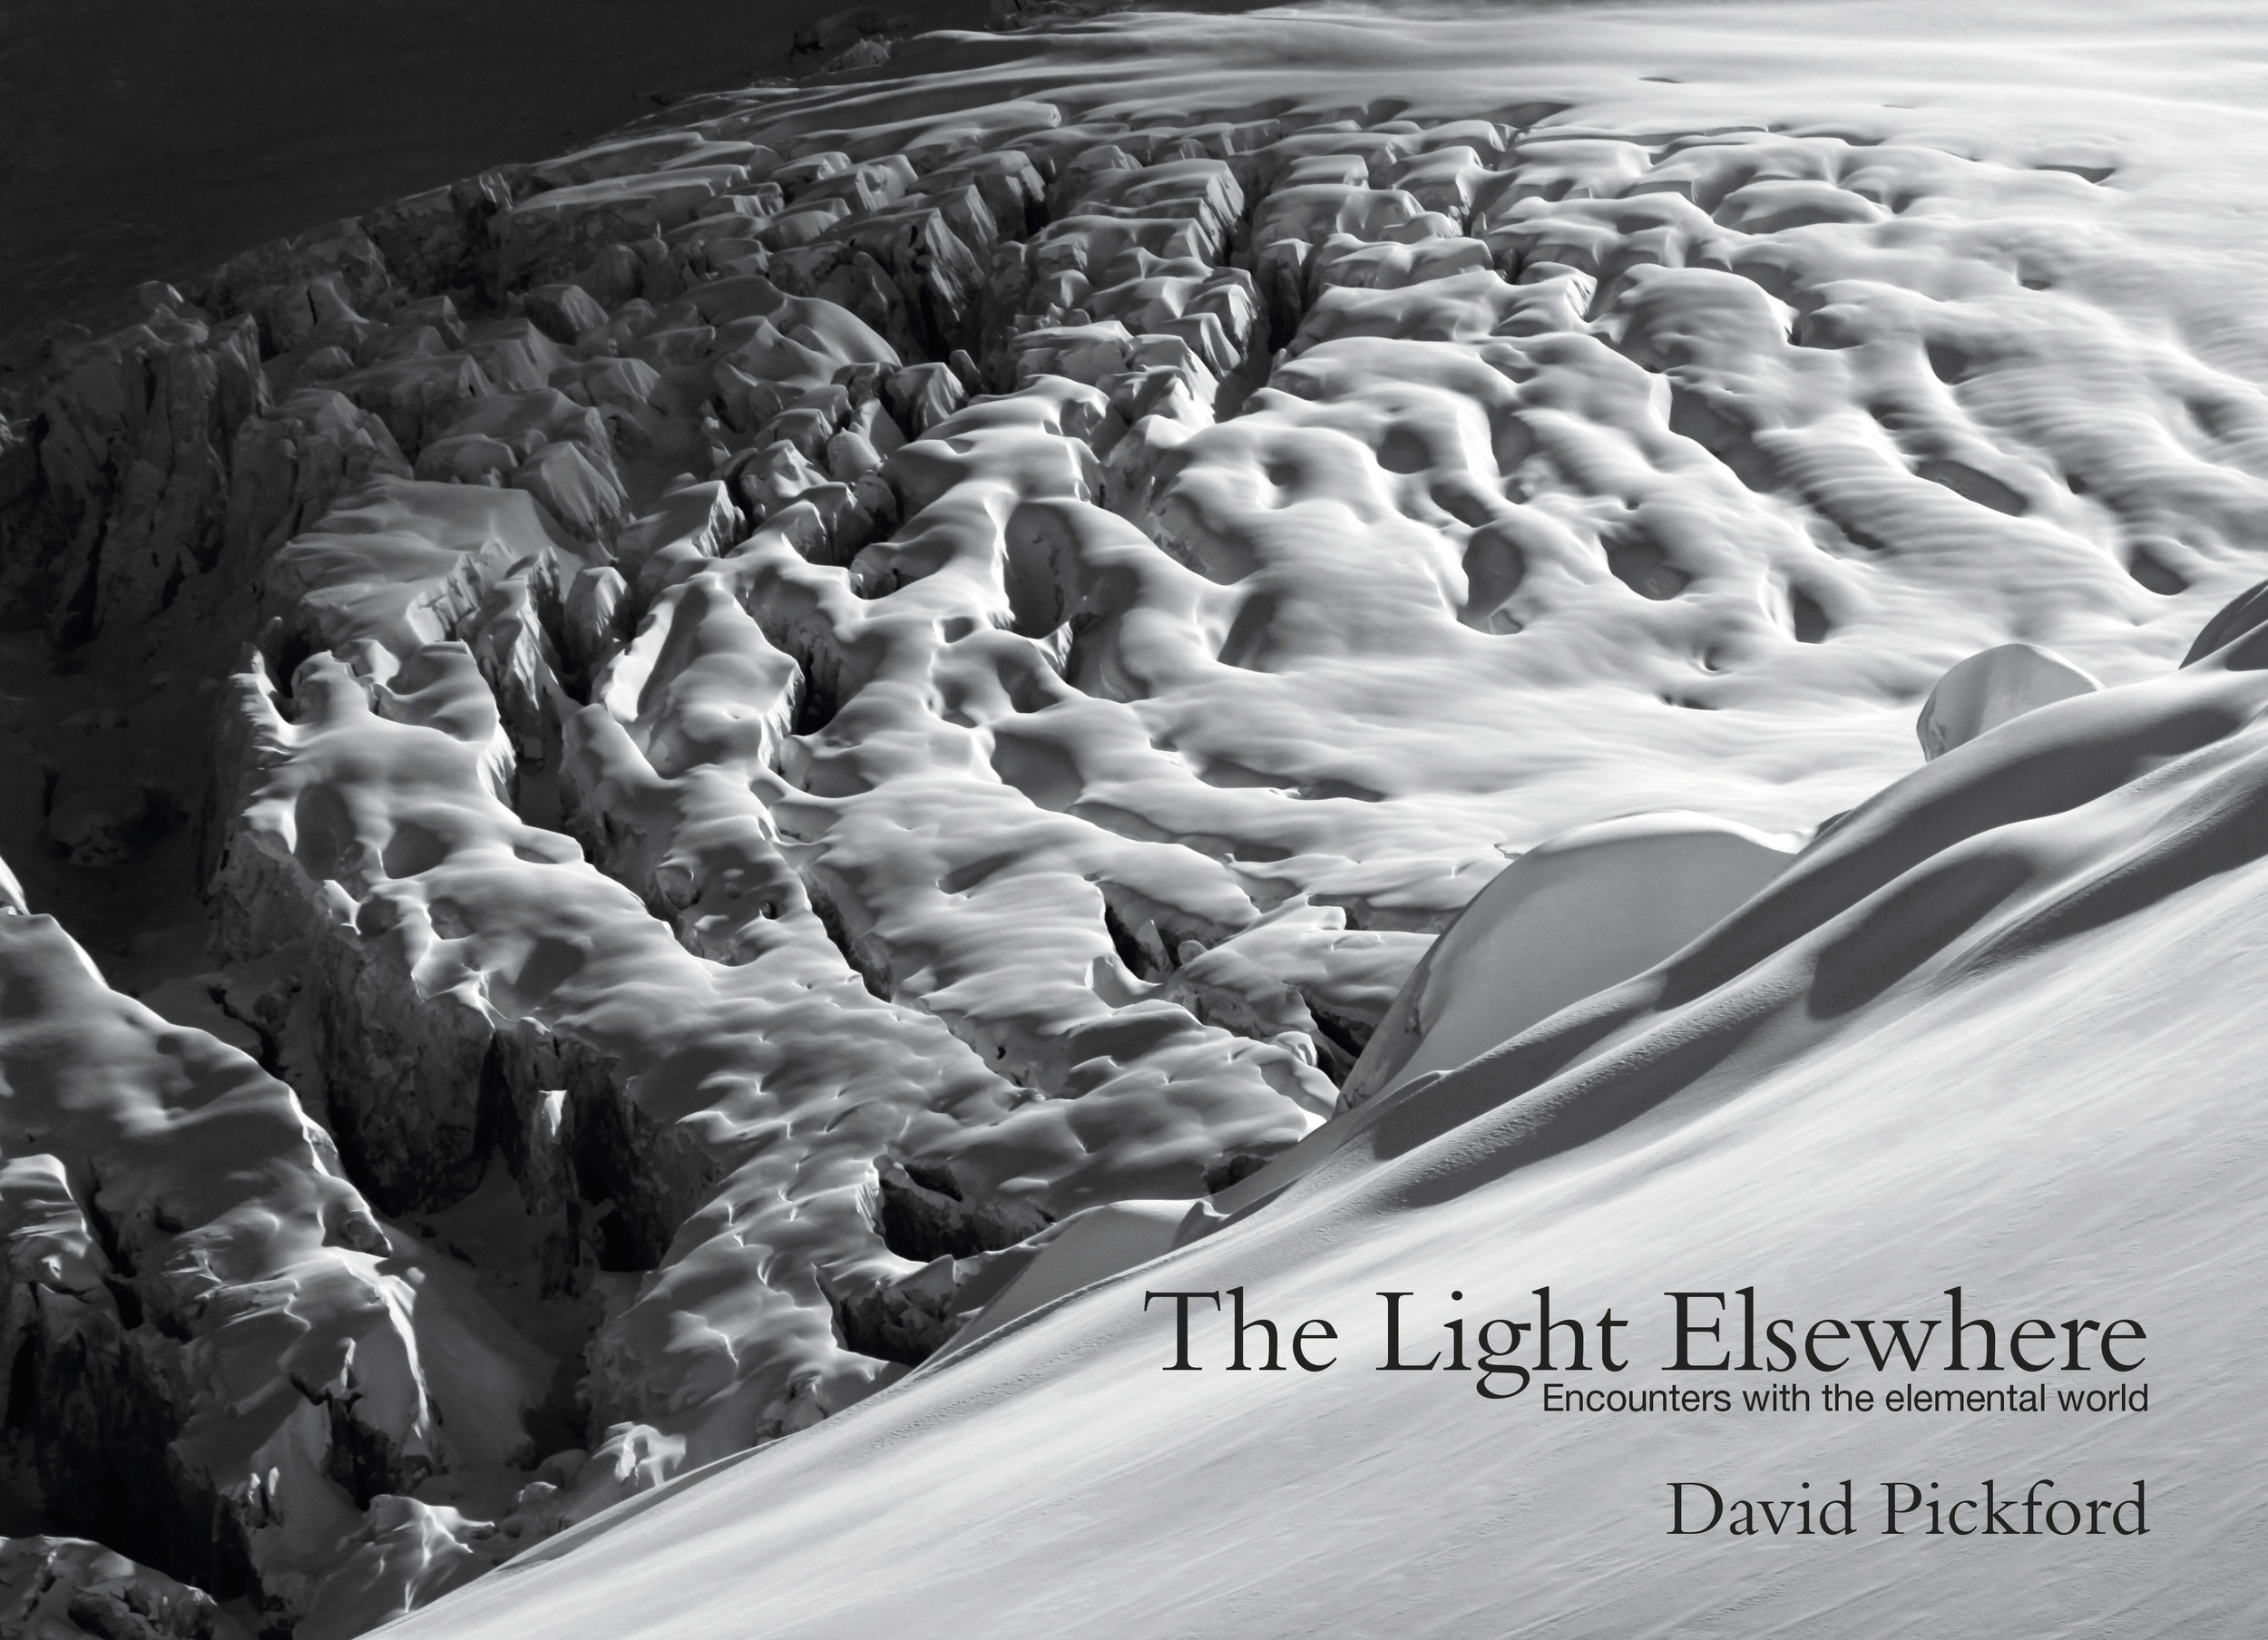 """""""Aside from being beautiful, it is also thought-provoking, highly intelligent, and immensely cultured in ways we might not expect from a book dealing for the most part with the nomadic, physical culture of international rock climbing.""""  - Award-winning writer Jim Perrin reviewing The Light Elsewhere: Encounters with the Elemental World"""